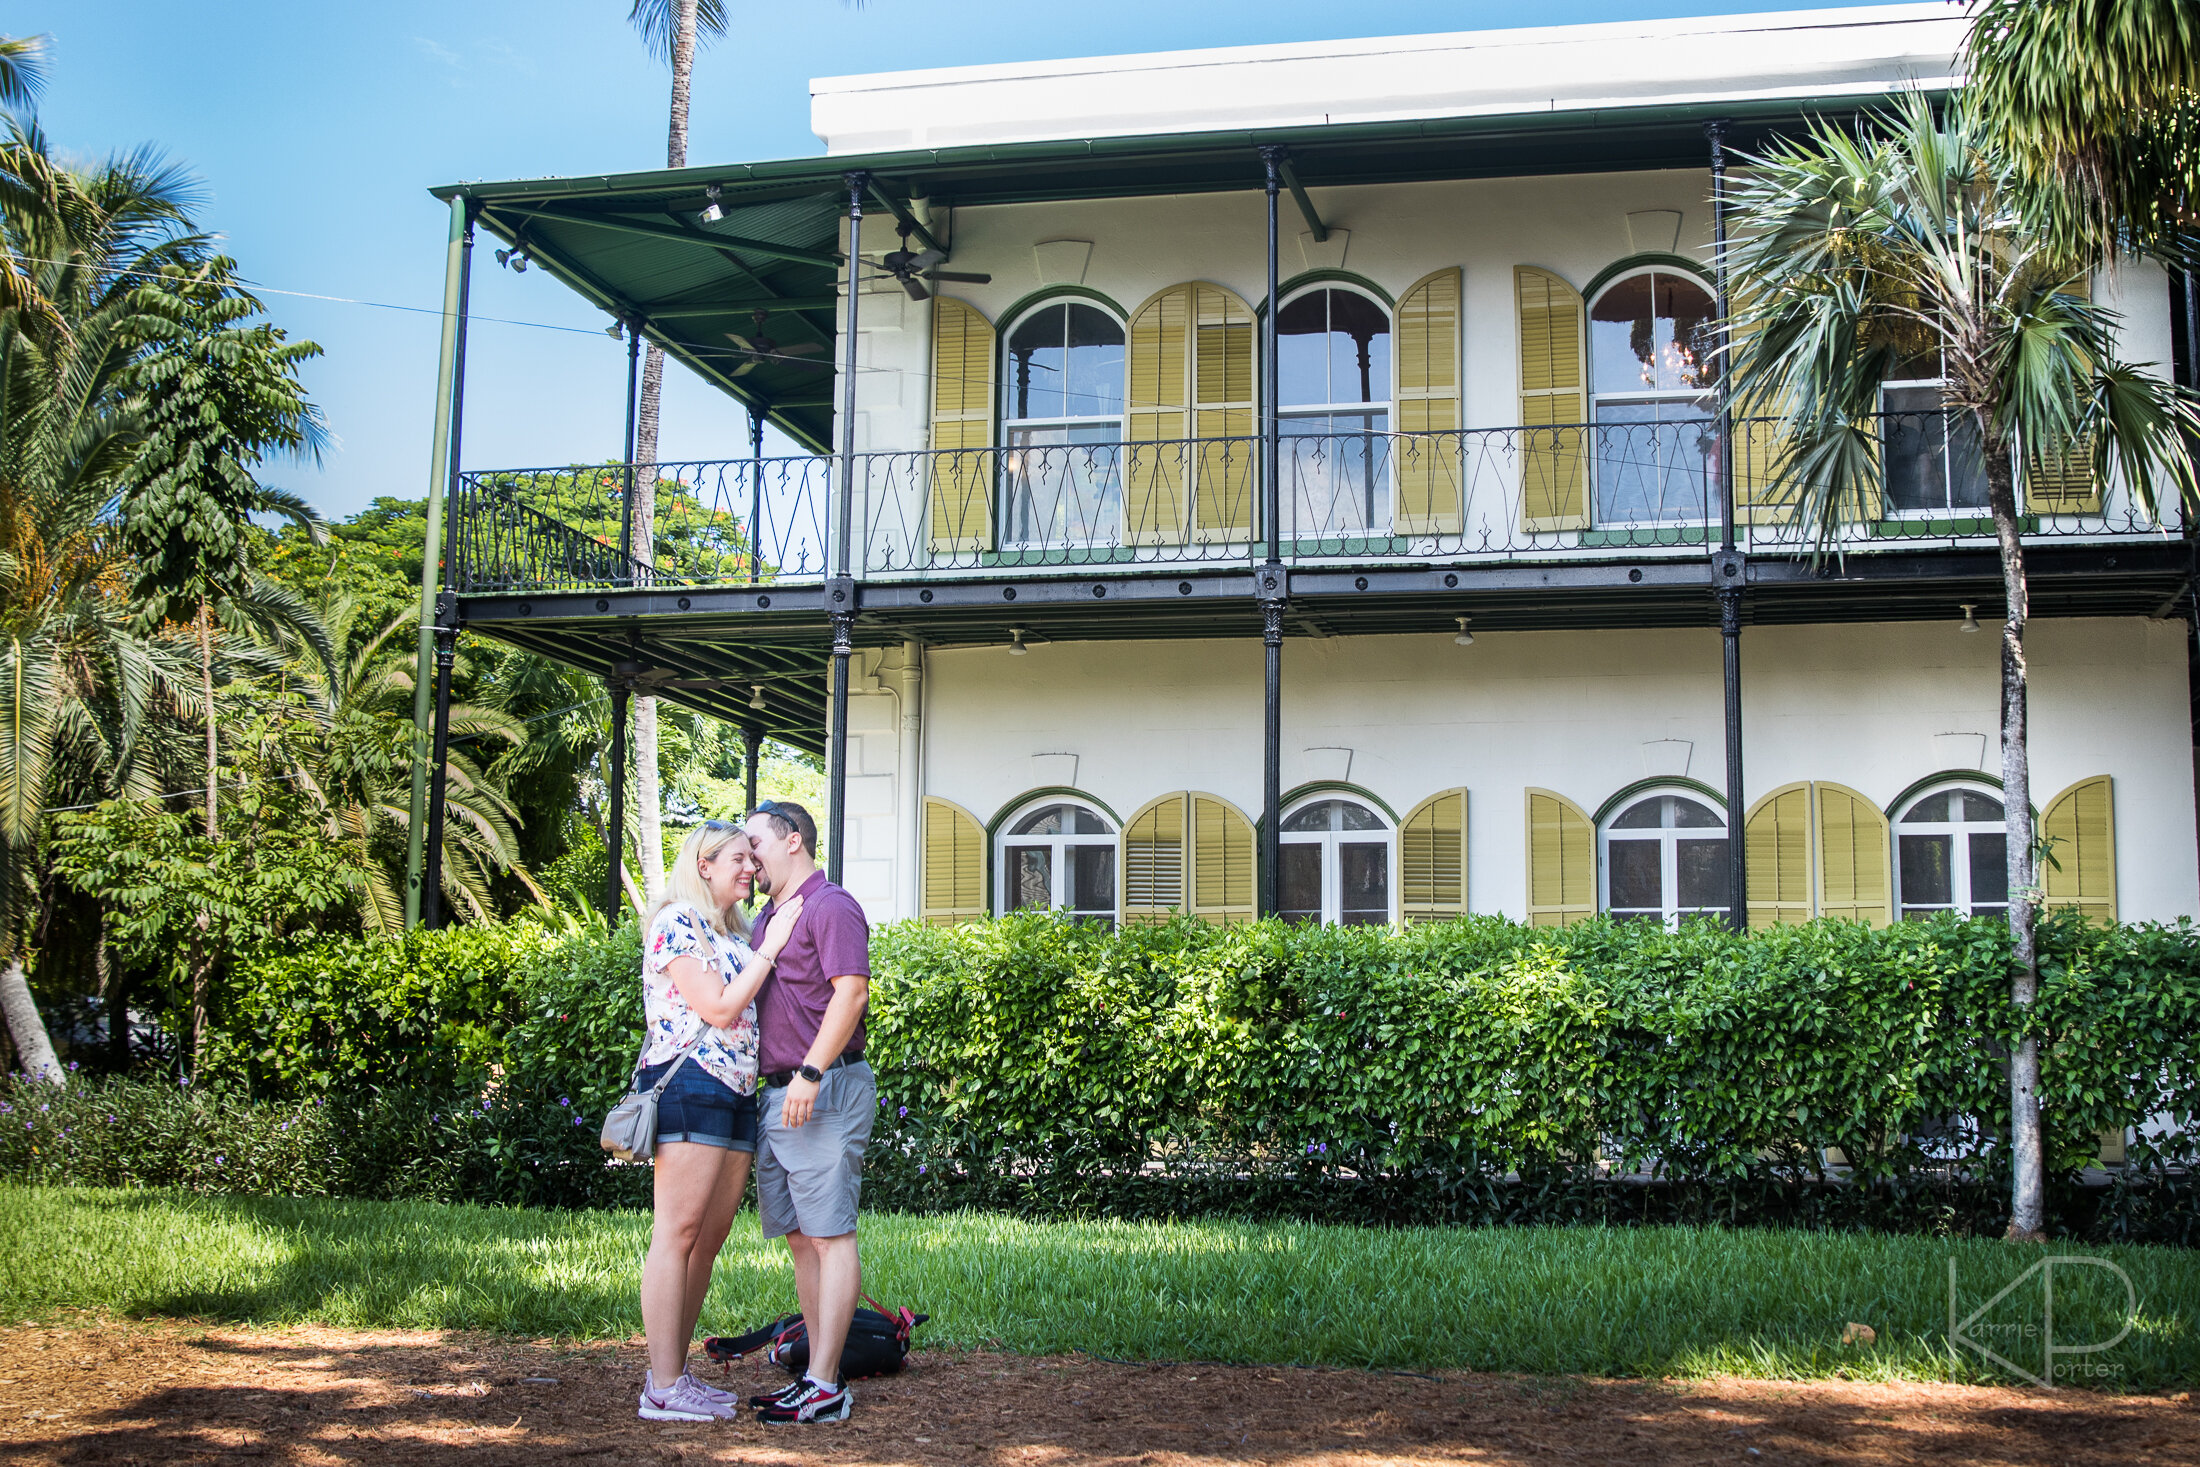 She said yes during undercover proposal in Key West at the Ernest Hemingway Home